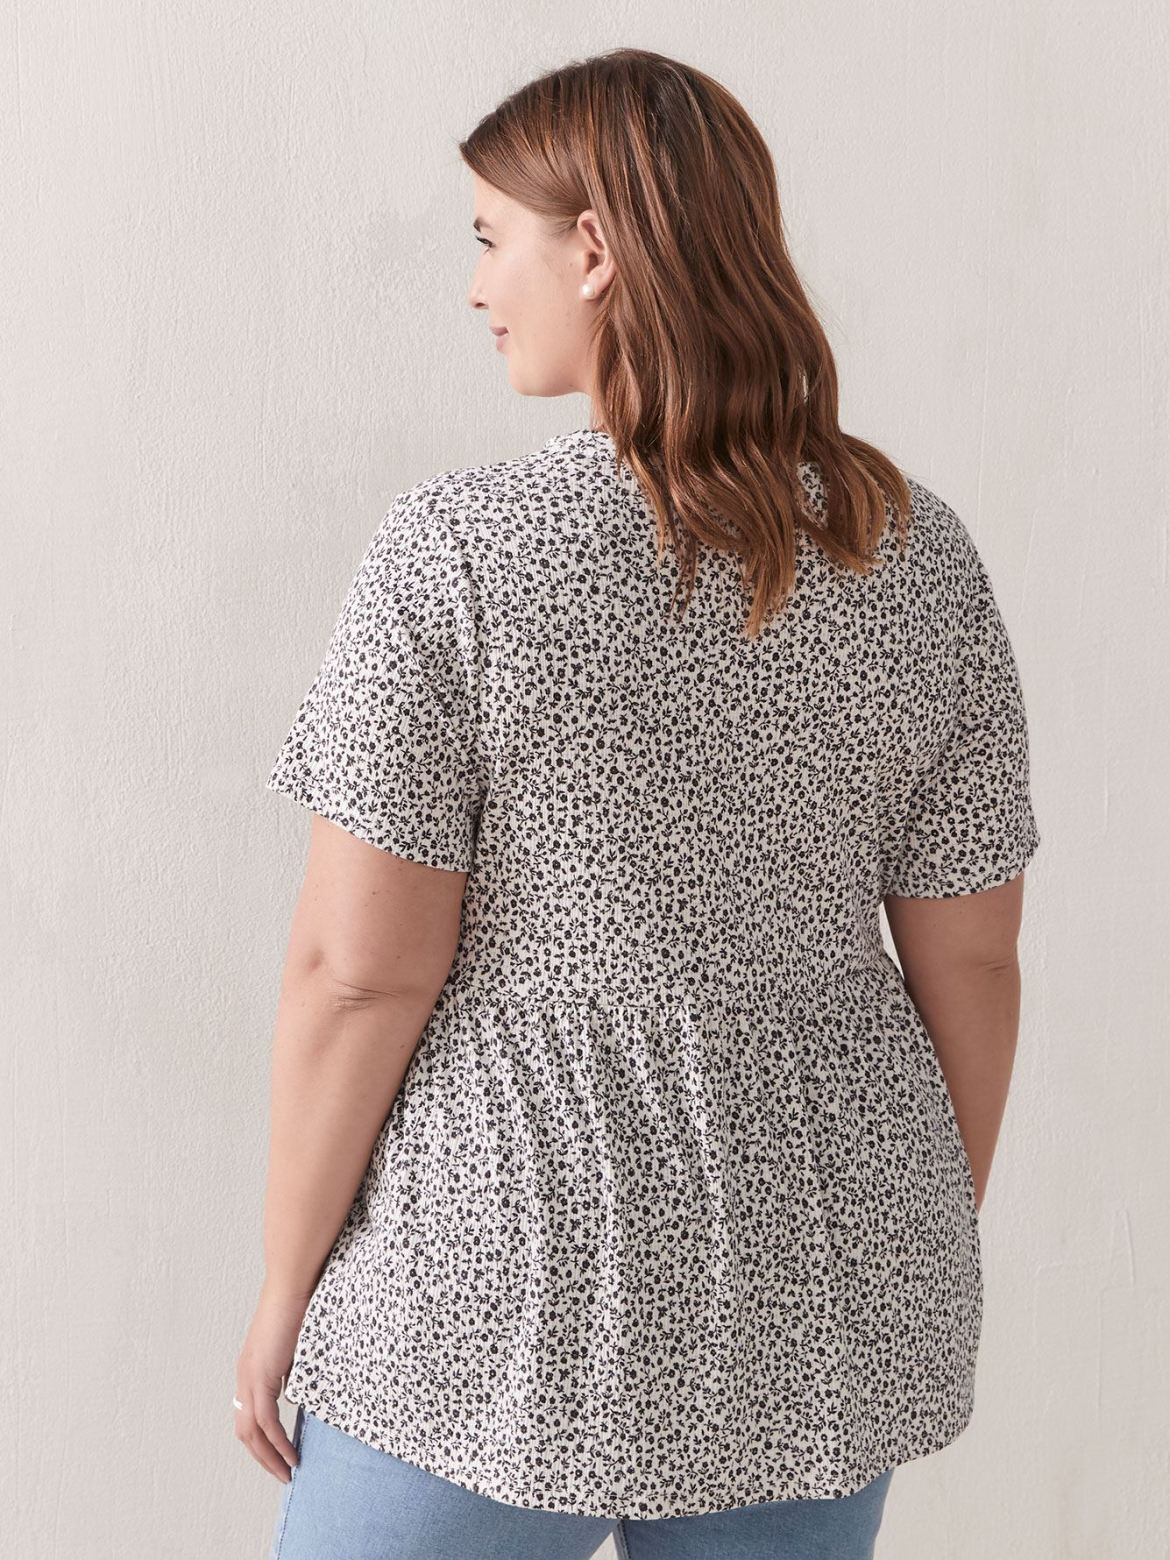 Short Sleeve A-Line Peplum Top - In Every Story